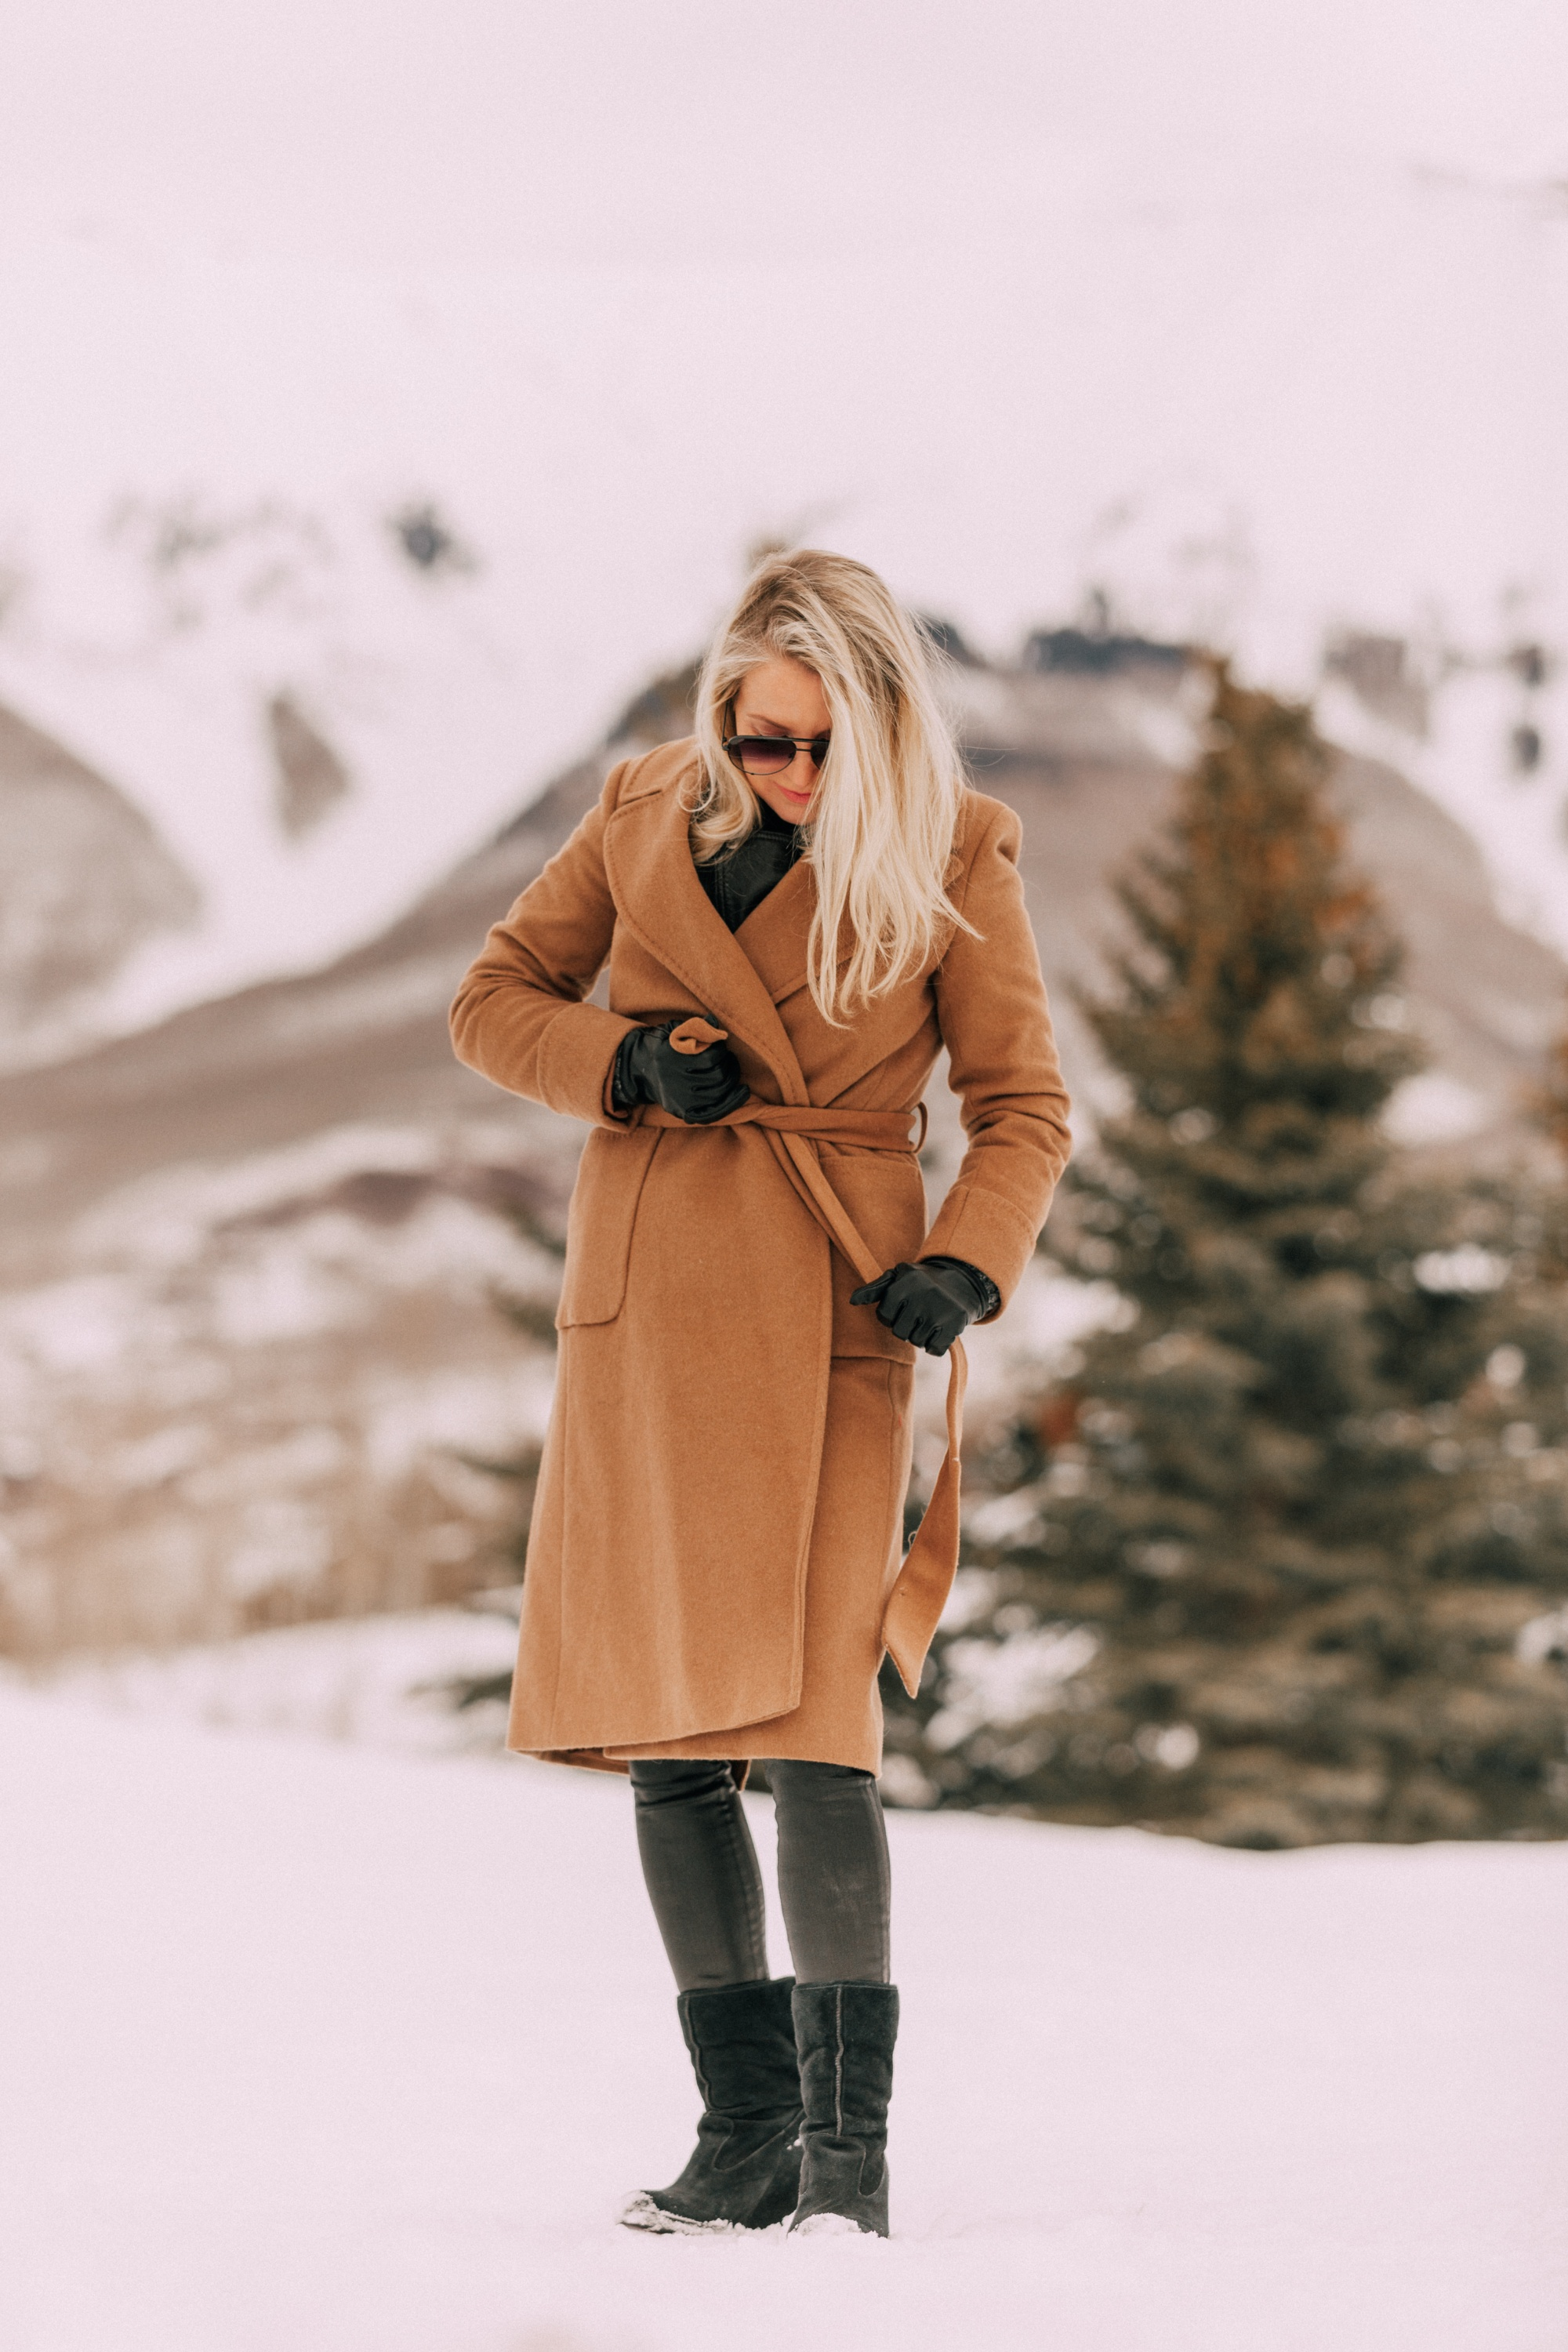 How To Layer A Moto Jacket, Fashion blogger wearing a black leather IRO moto jacket underneath Mackage long camel coat Carolina Amato gloves, rocket leatherette skinny jeans by Citizens of Humanity, black cashmere turtleneck, and Ugg wedge boots in Telluride, CO